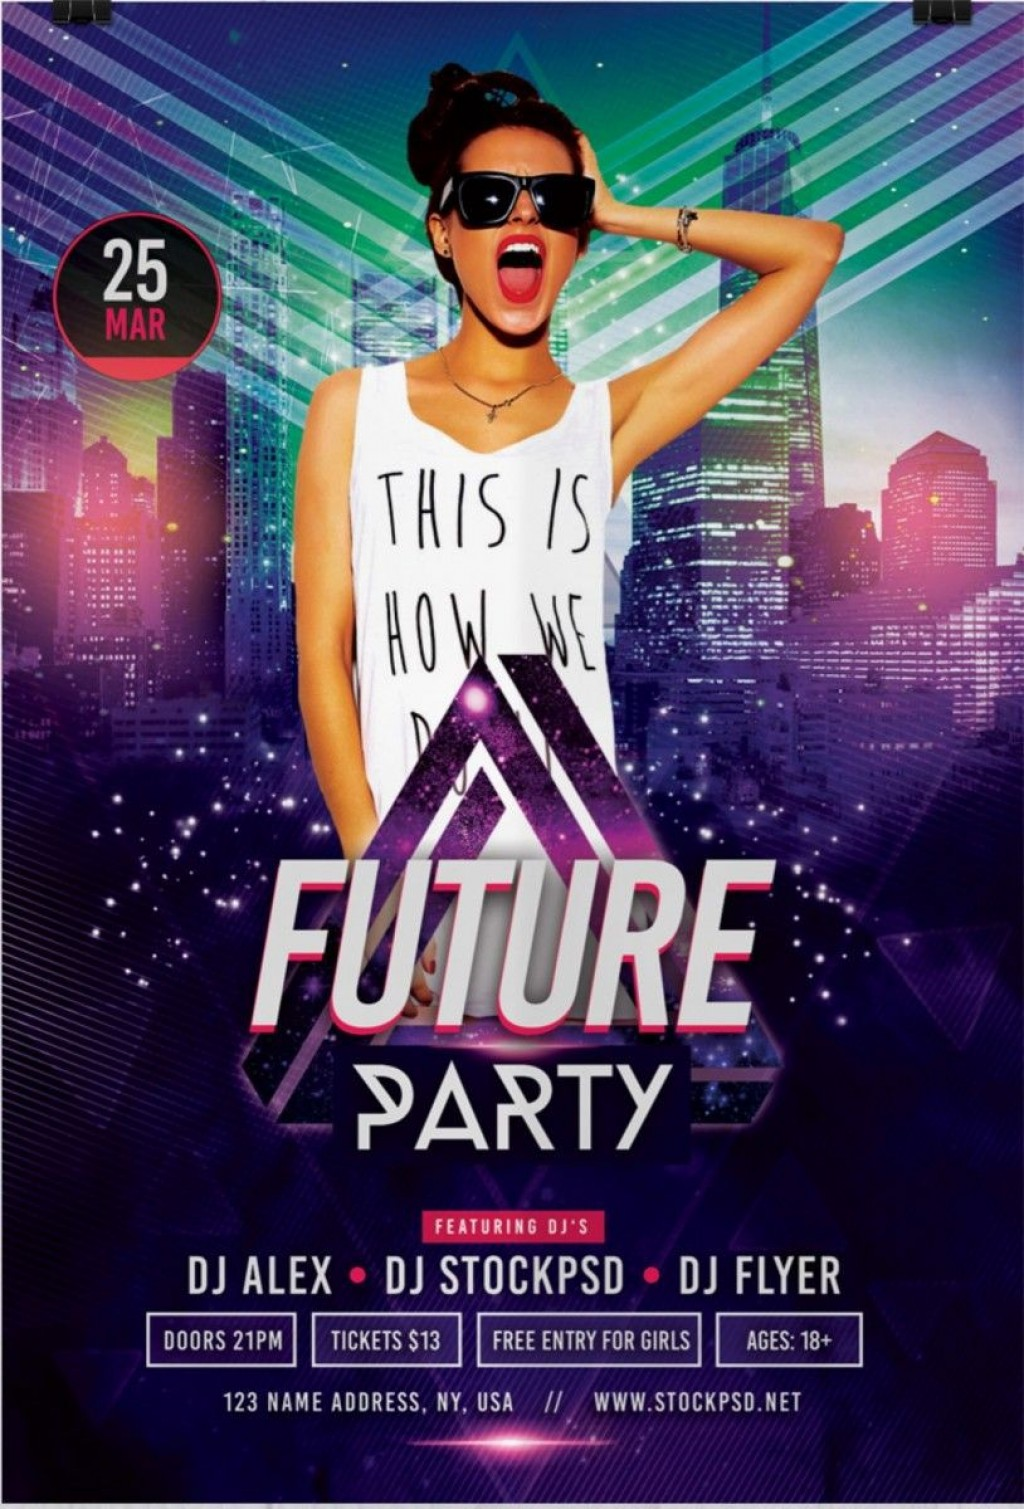 004 Impressive Free Party Flyer Template For Mac Design Large